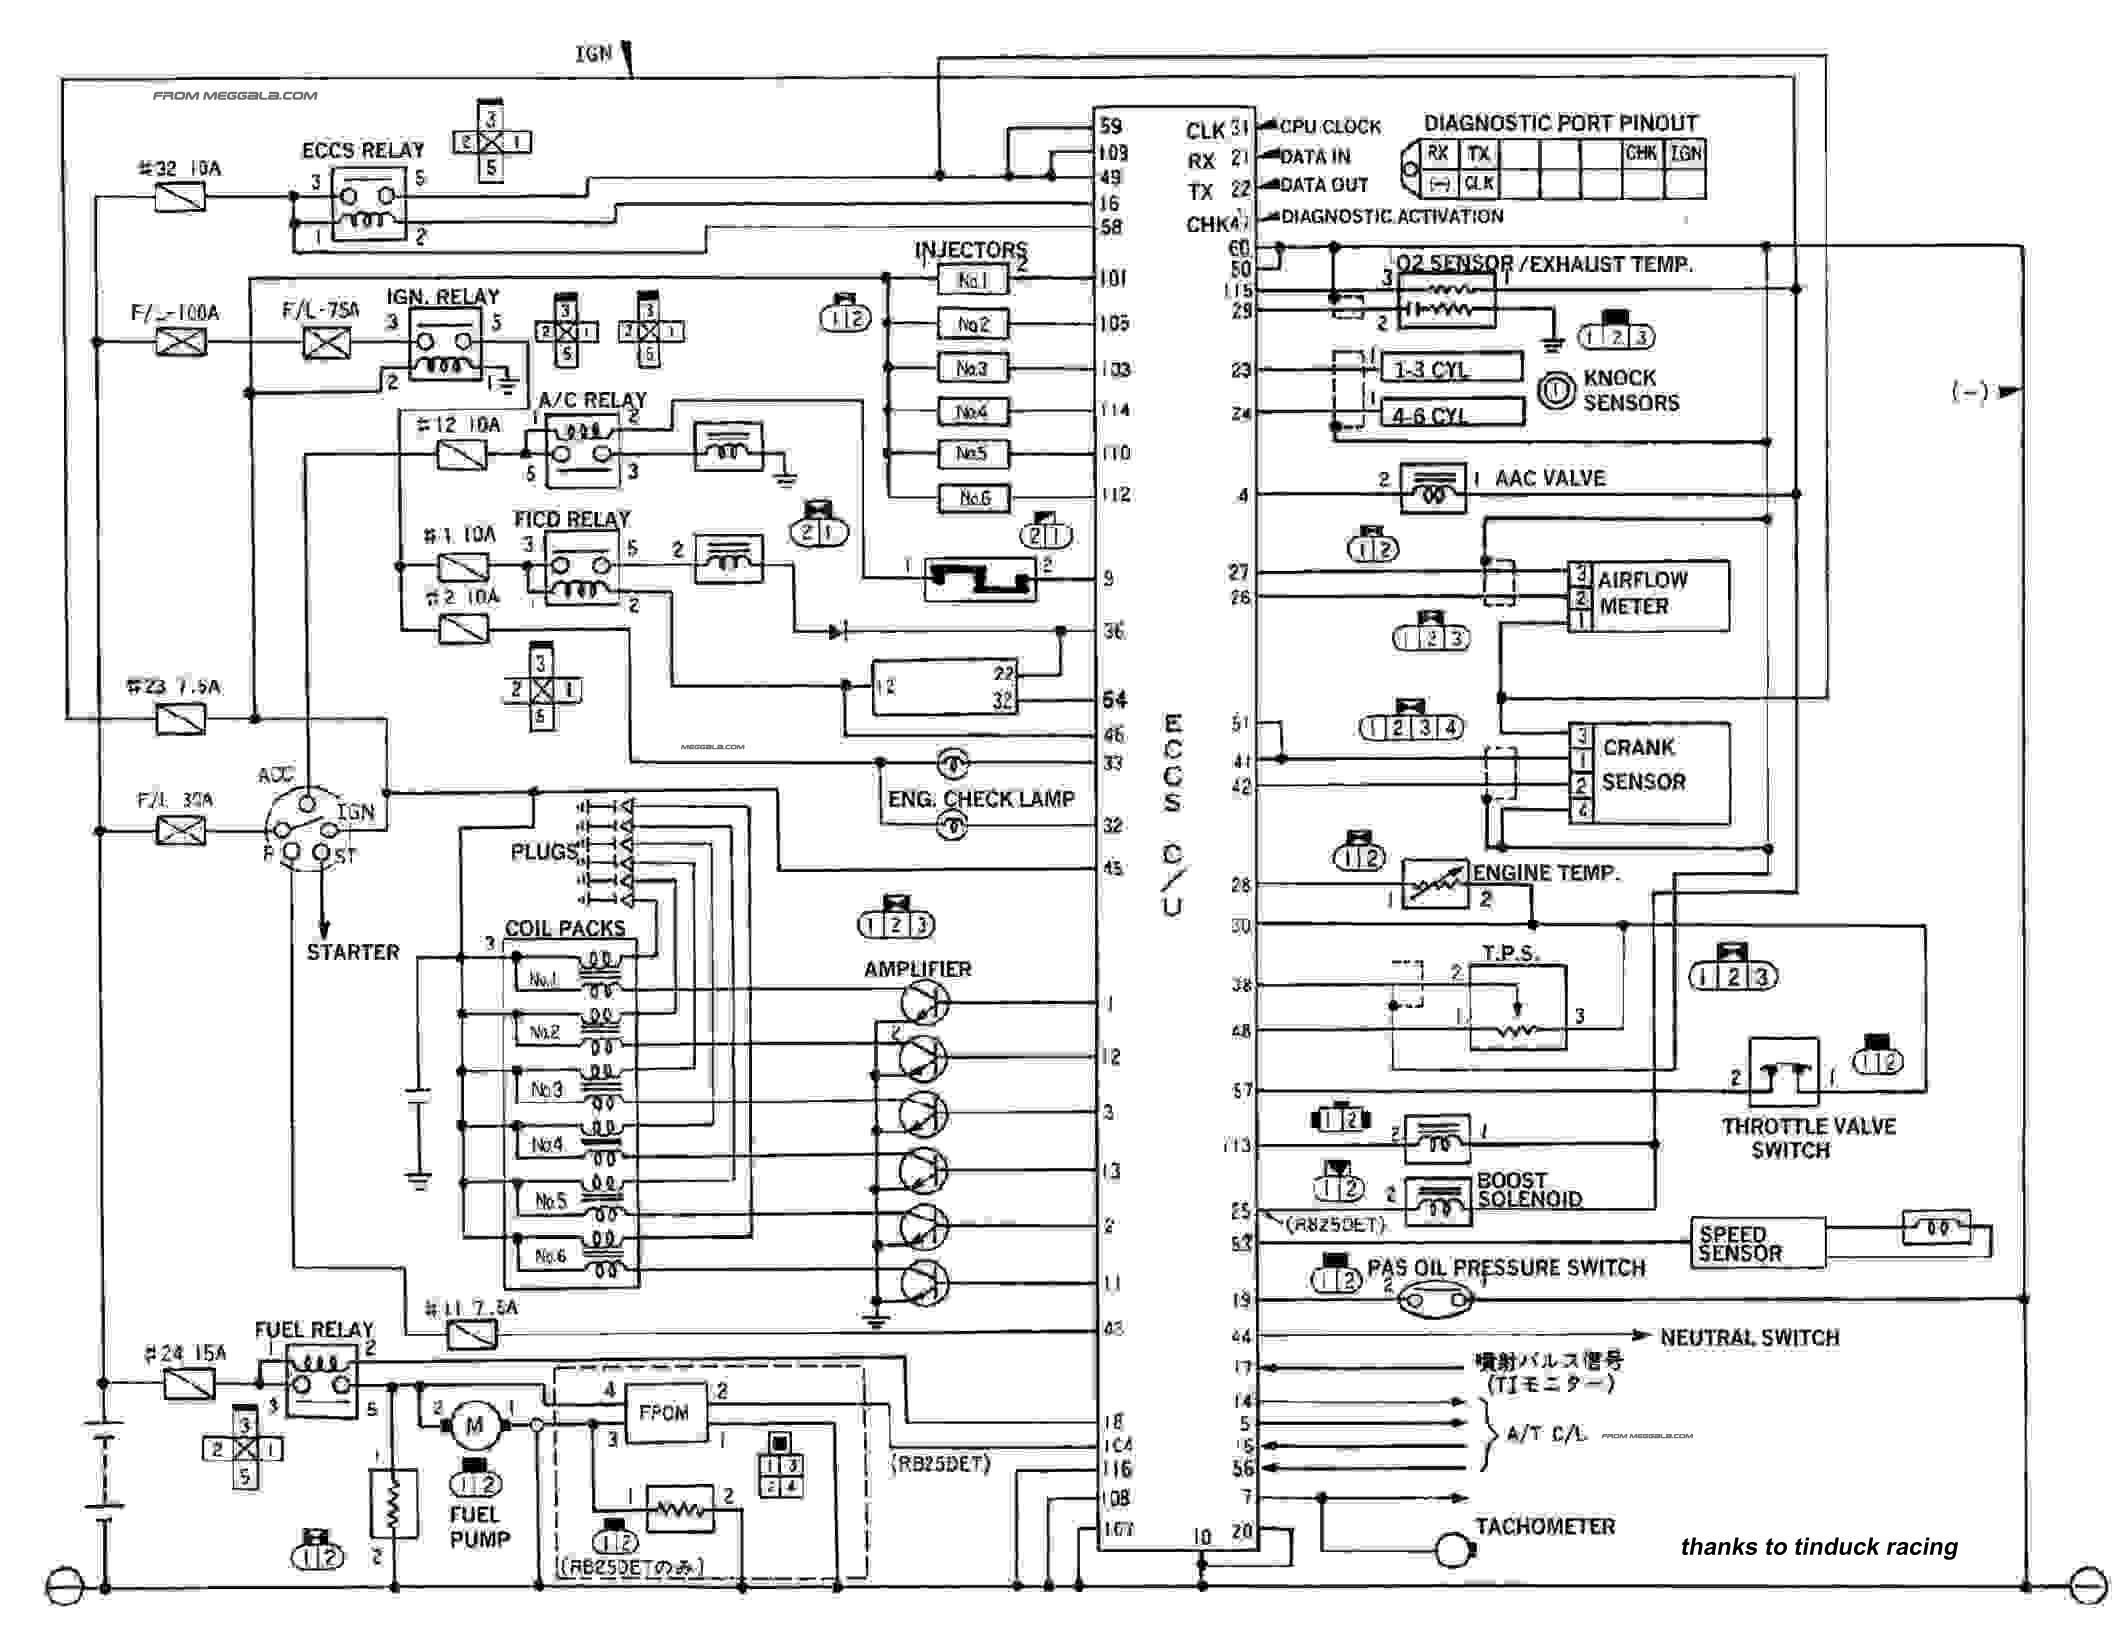 Infiniti Q45 Engine Diagram 1993 J30 Partment Fuse Box Best Alternator Wiring Ipphil Of